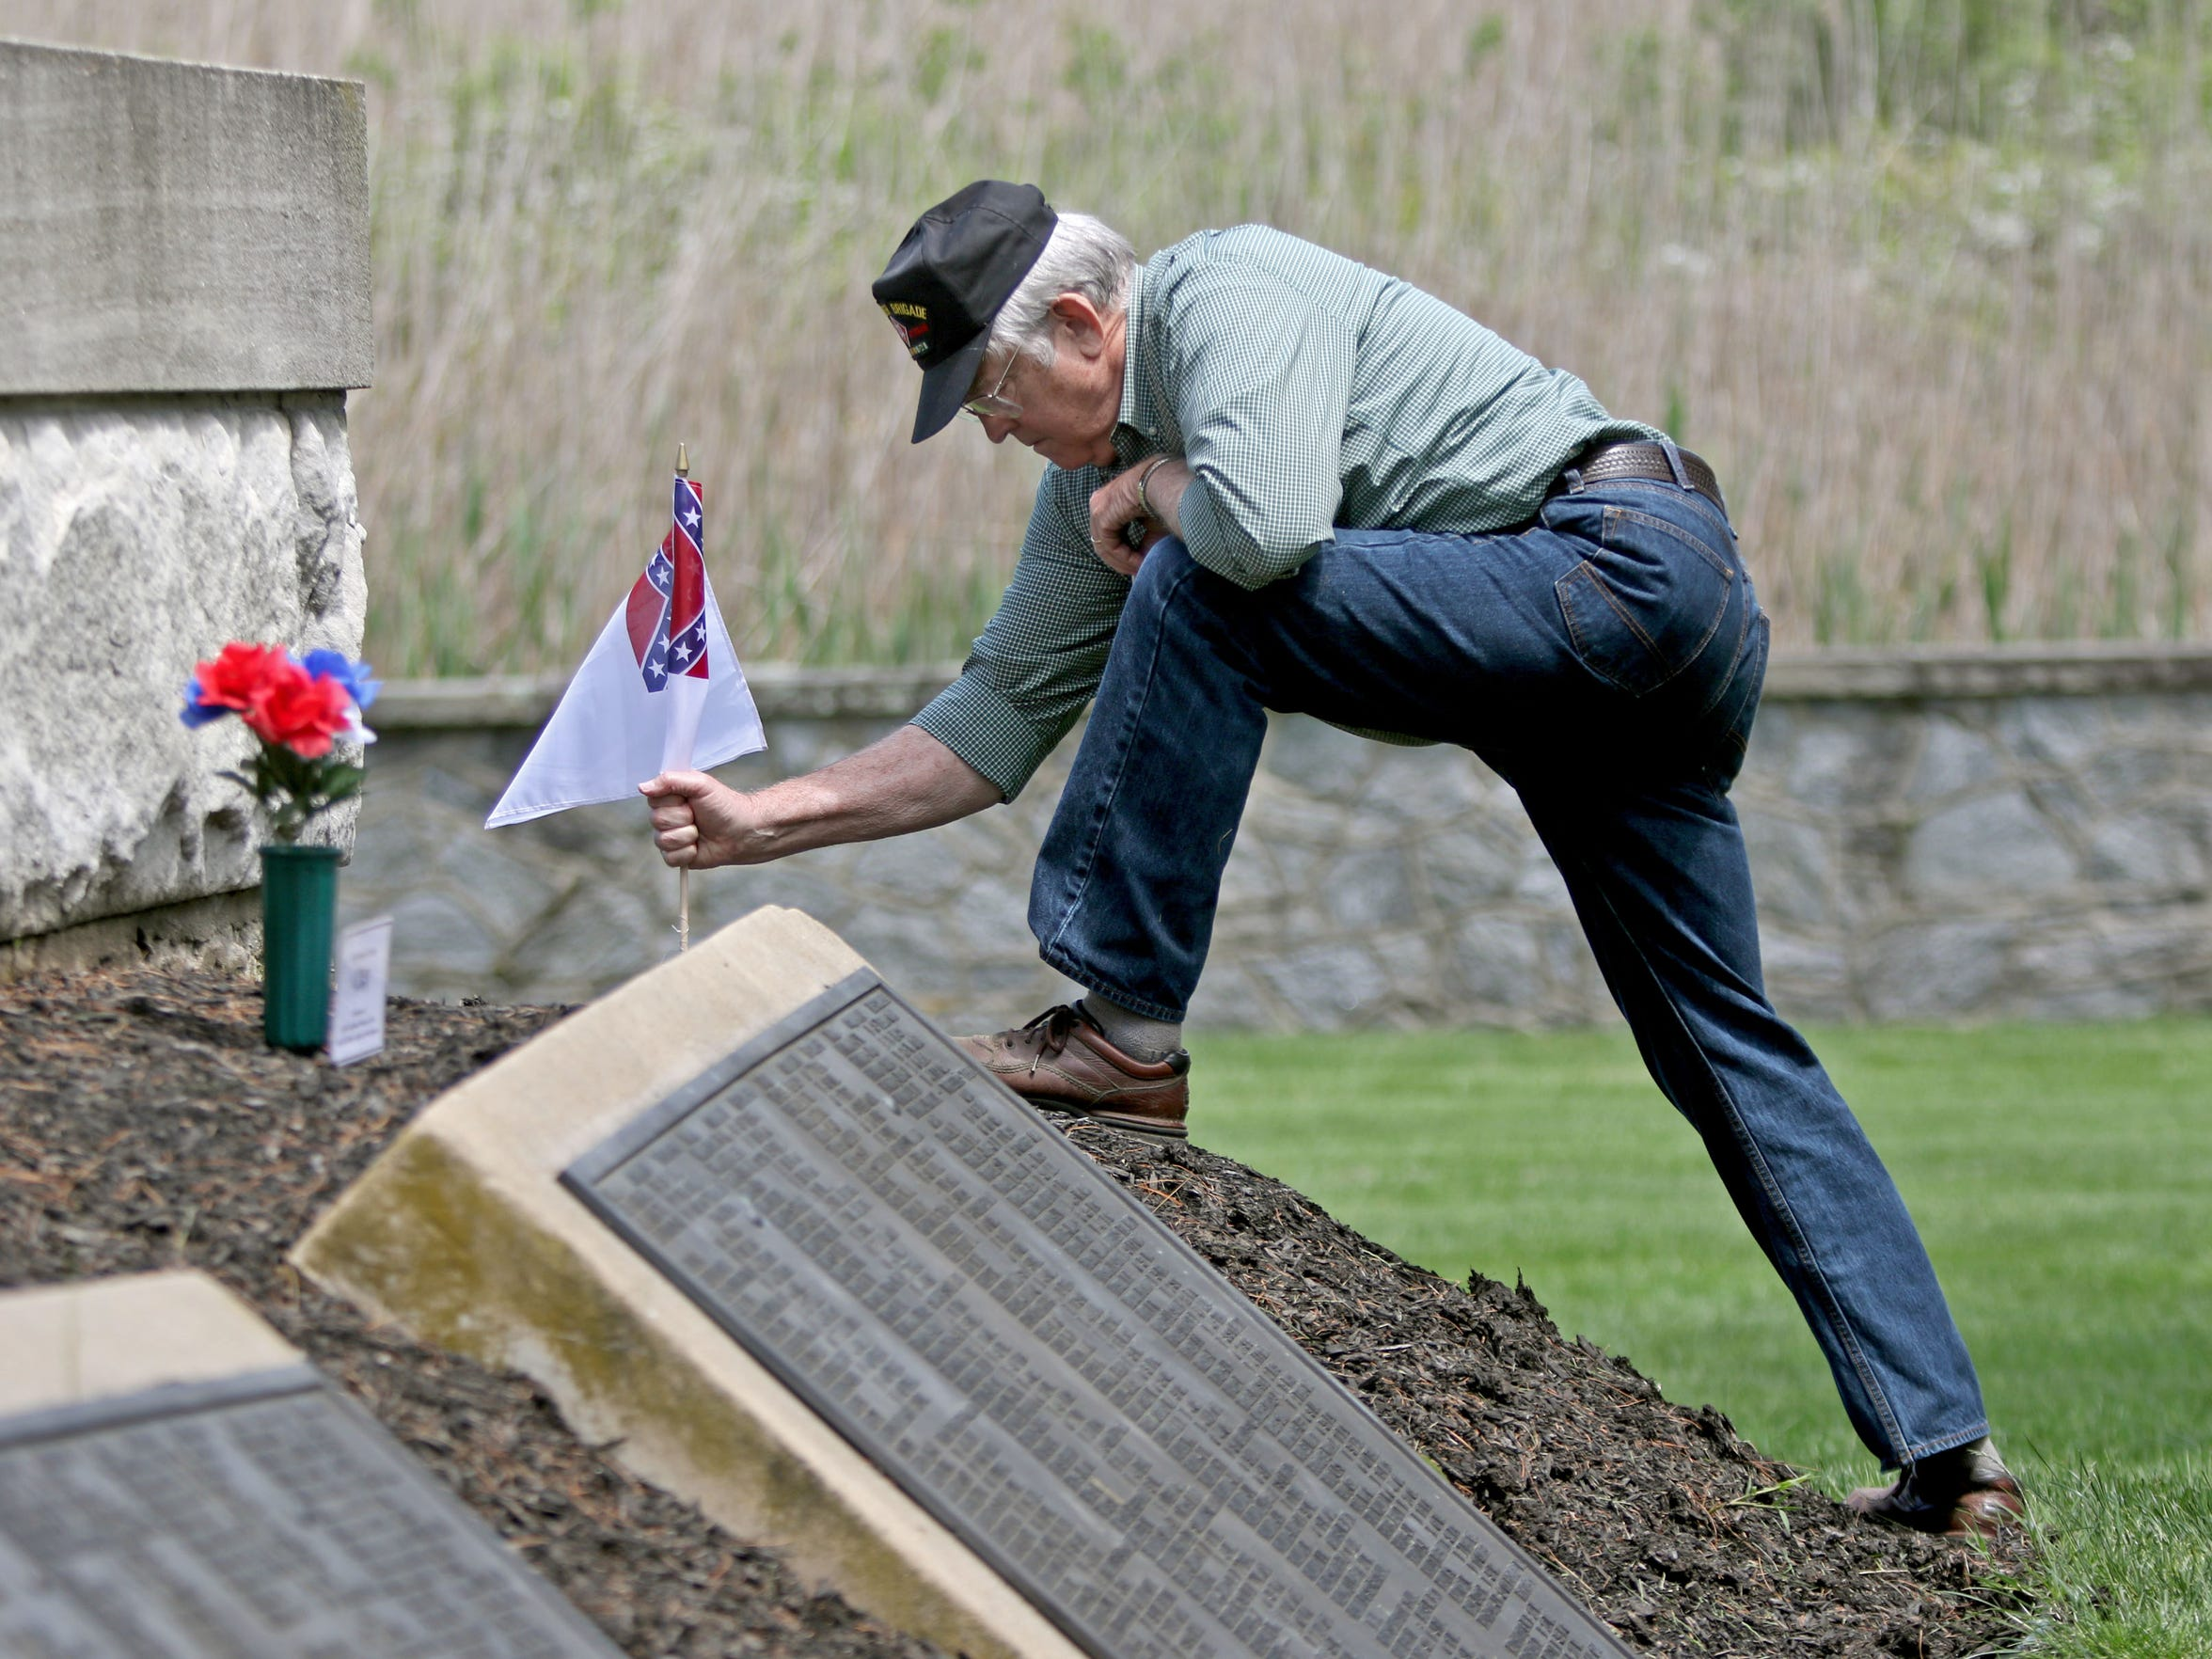 R. Hugh Simmons with the Fort Delaware Society, to puts memorial flags around a monument with the names of Confederate soldiers in Finn's Point National Cemetery in Pennsville, N.J. The soldiers died when they were on Pea Patch Island, Fort Delaware, during the Civil War.